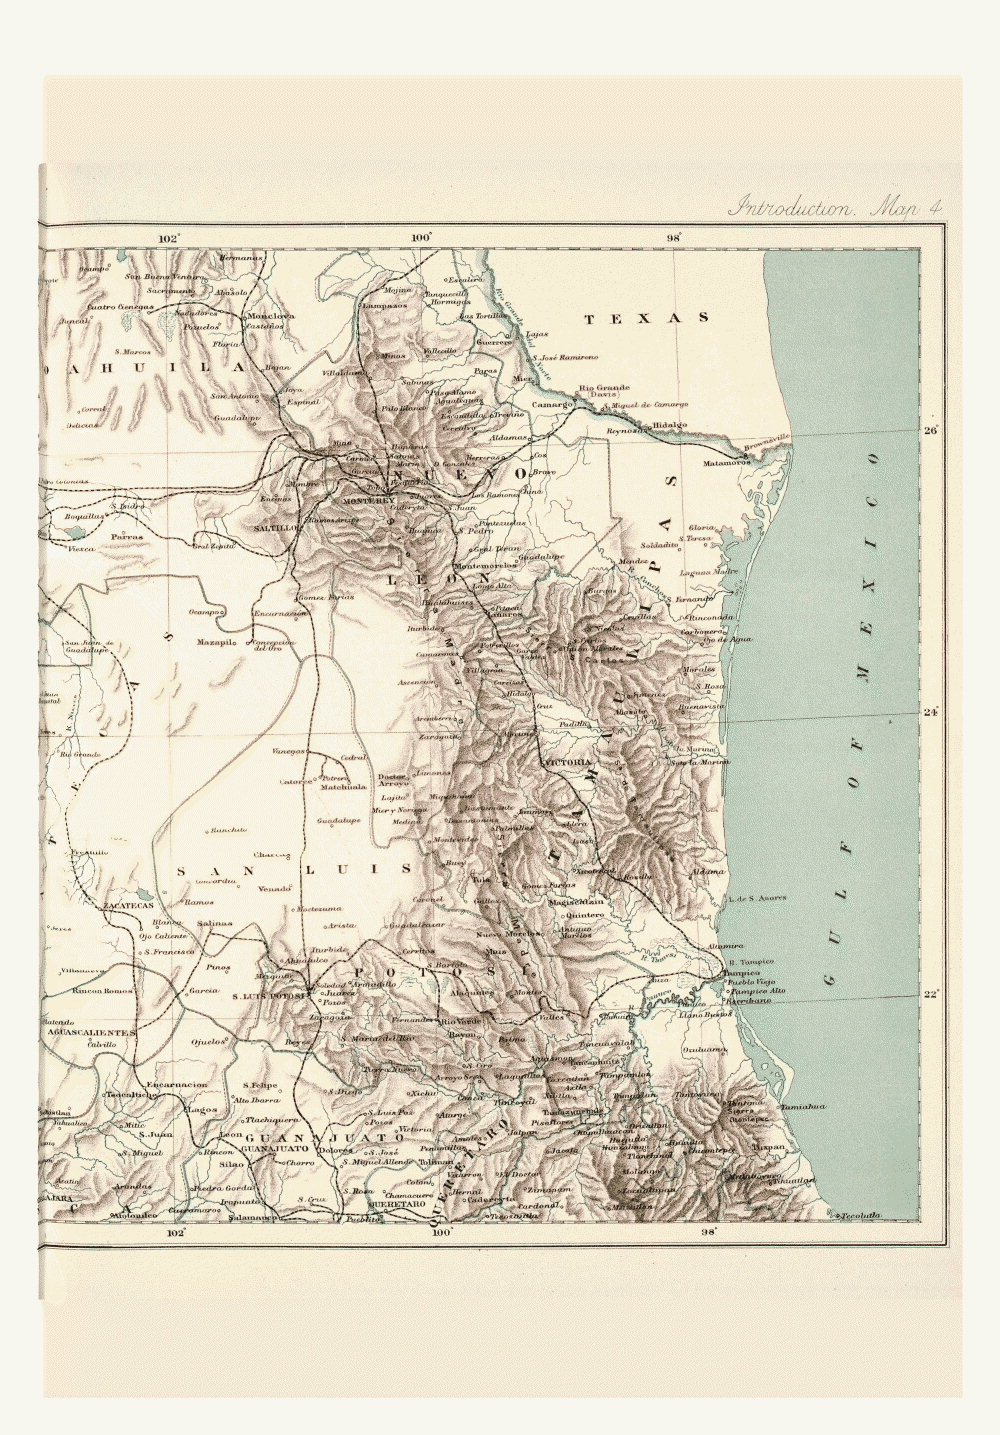 Maps of Central America,  Image number:bca_01_00_00_187